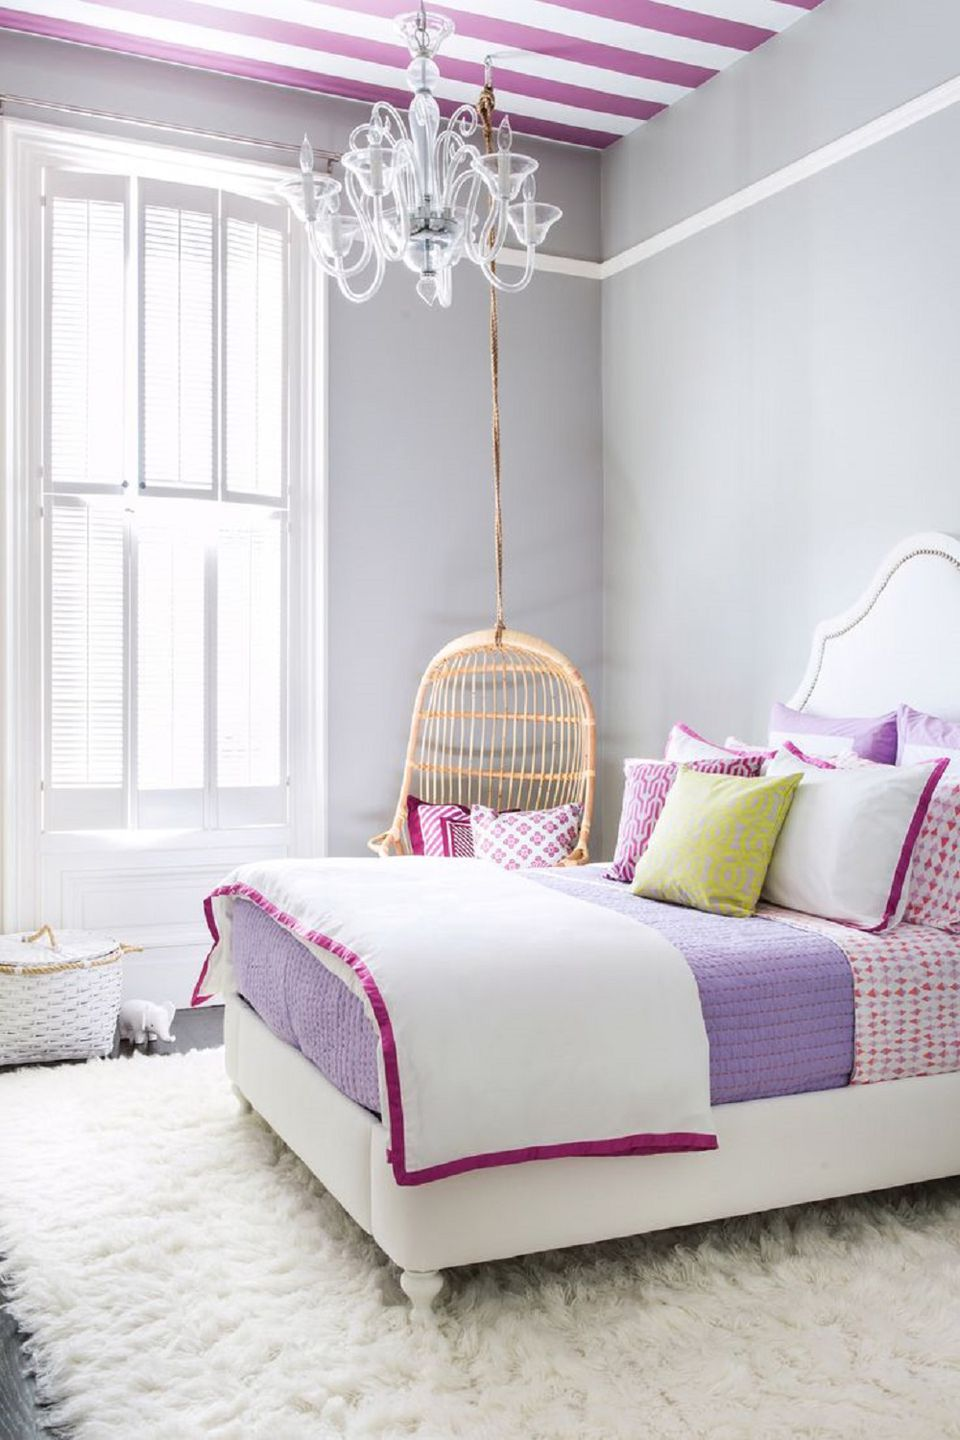 Little Girls Rooms Ideas For Decorating A Little Girl's Bedroom